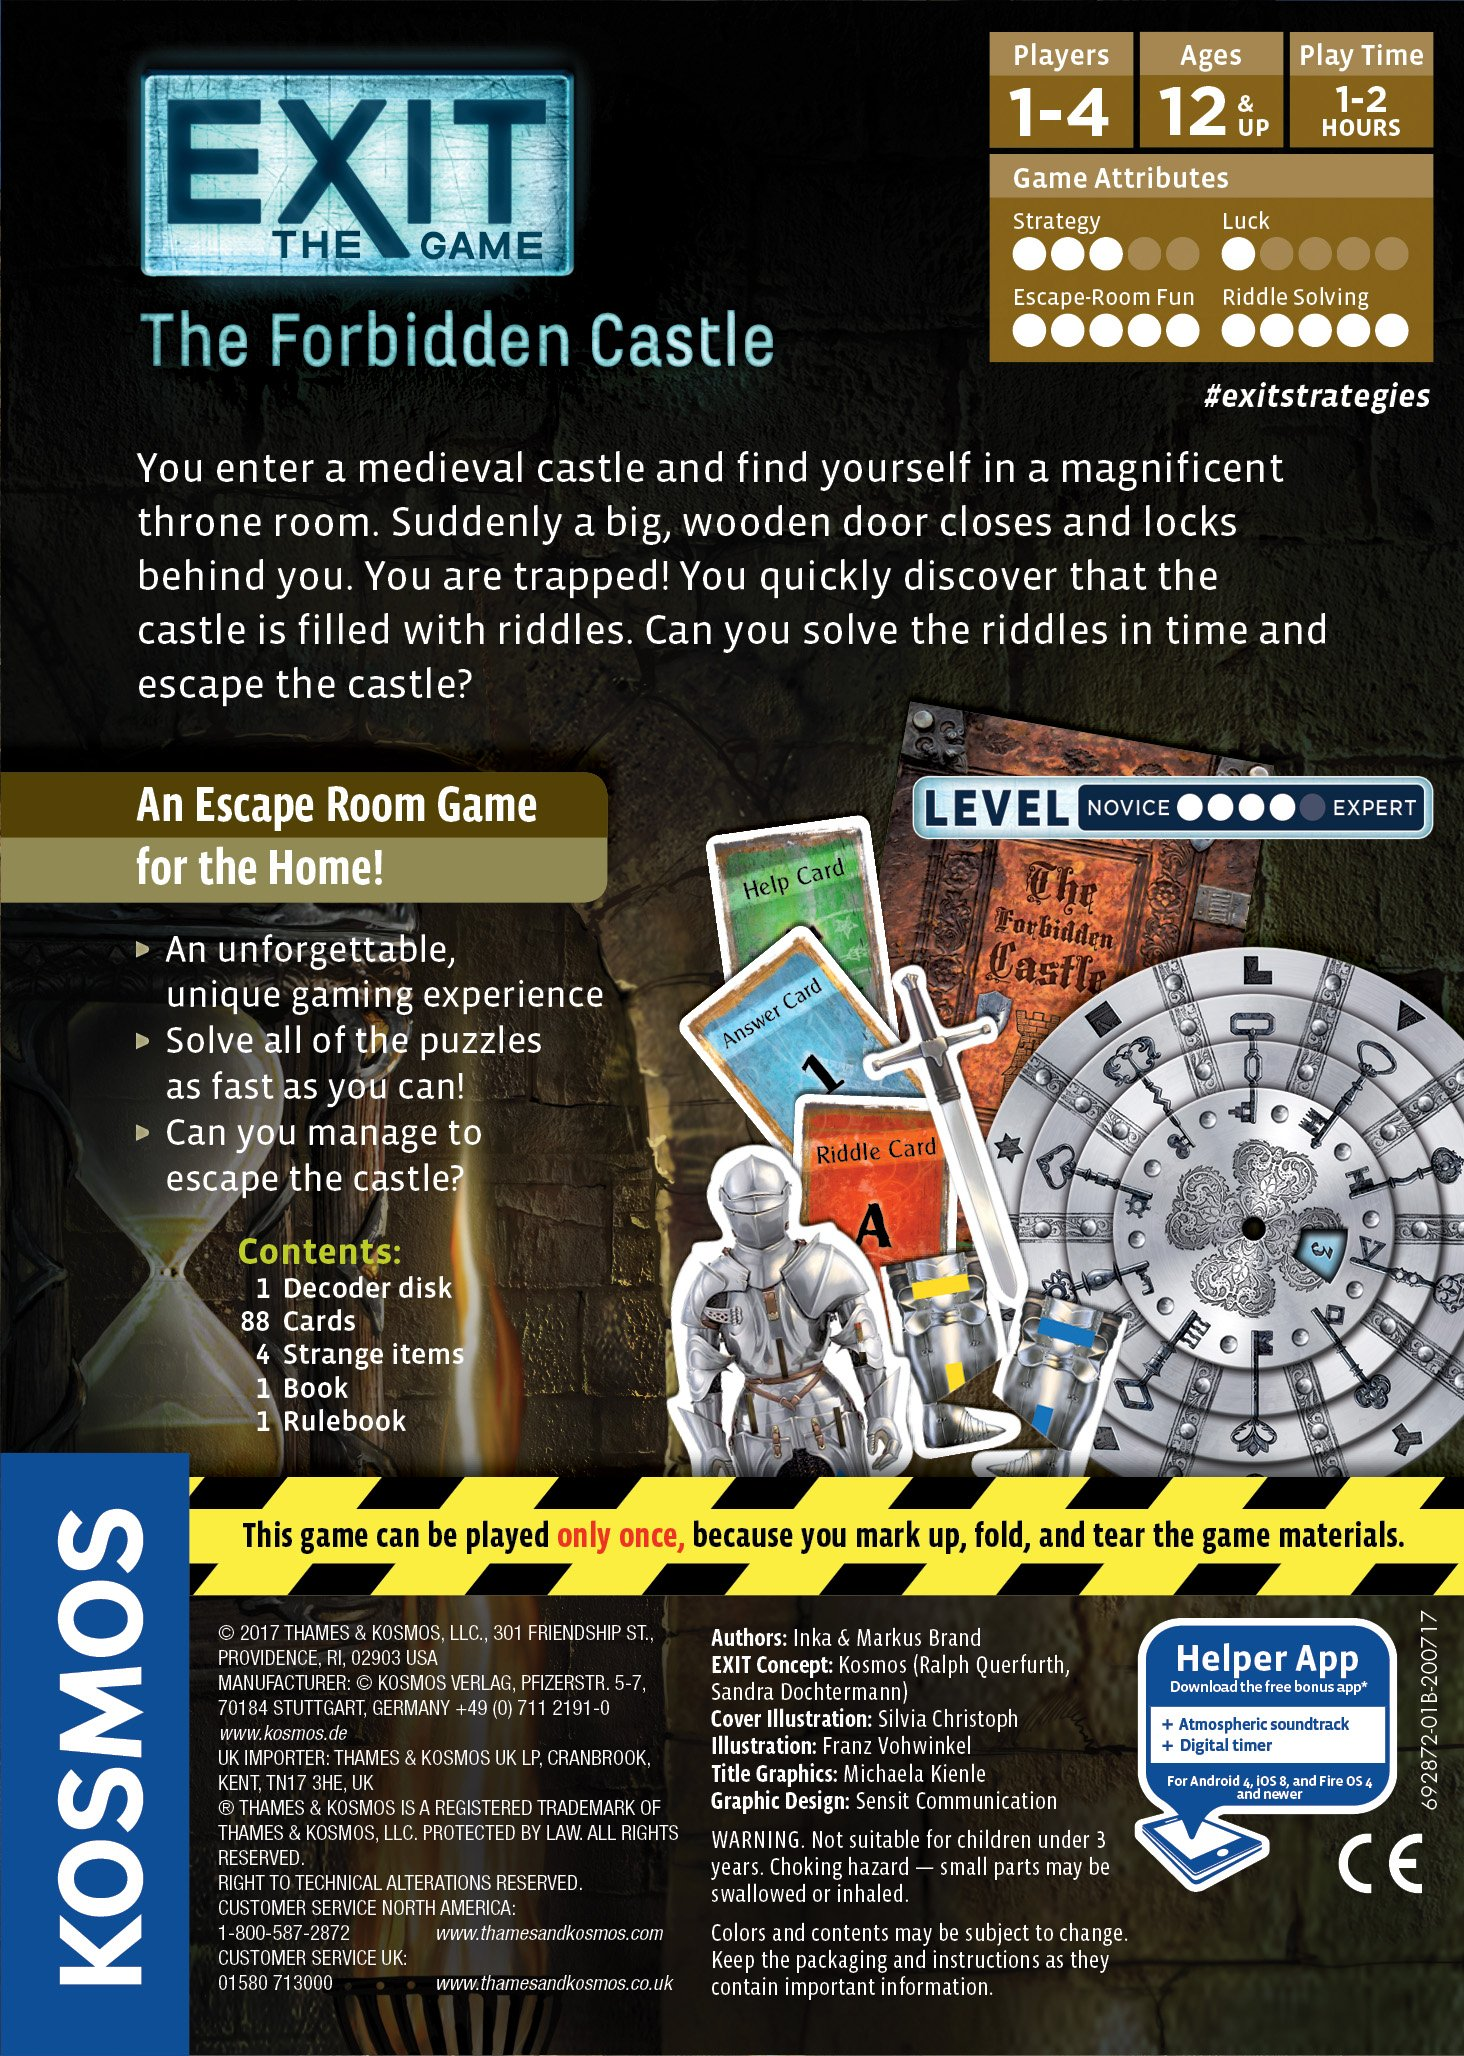 Exit: The Forbidden Castle | Exit: The Game - A Kosmos Game | Family-Friendly, Card-Based at-Home Escape Room Experience for 1 to 4 Players, Ages 12+